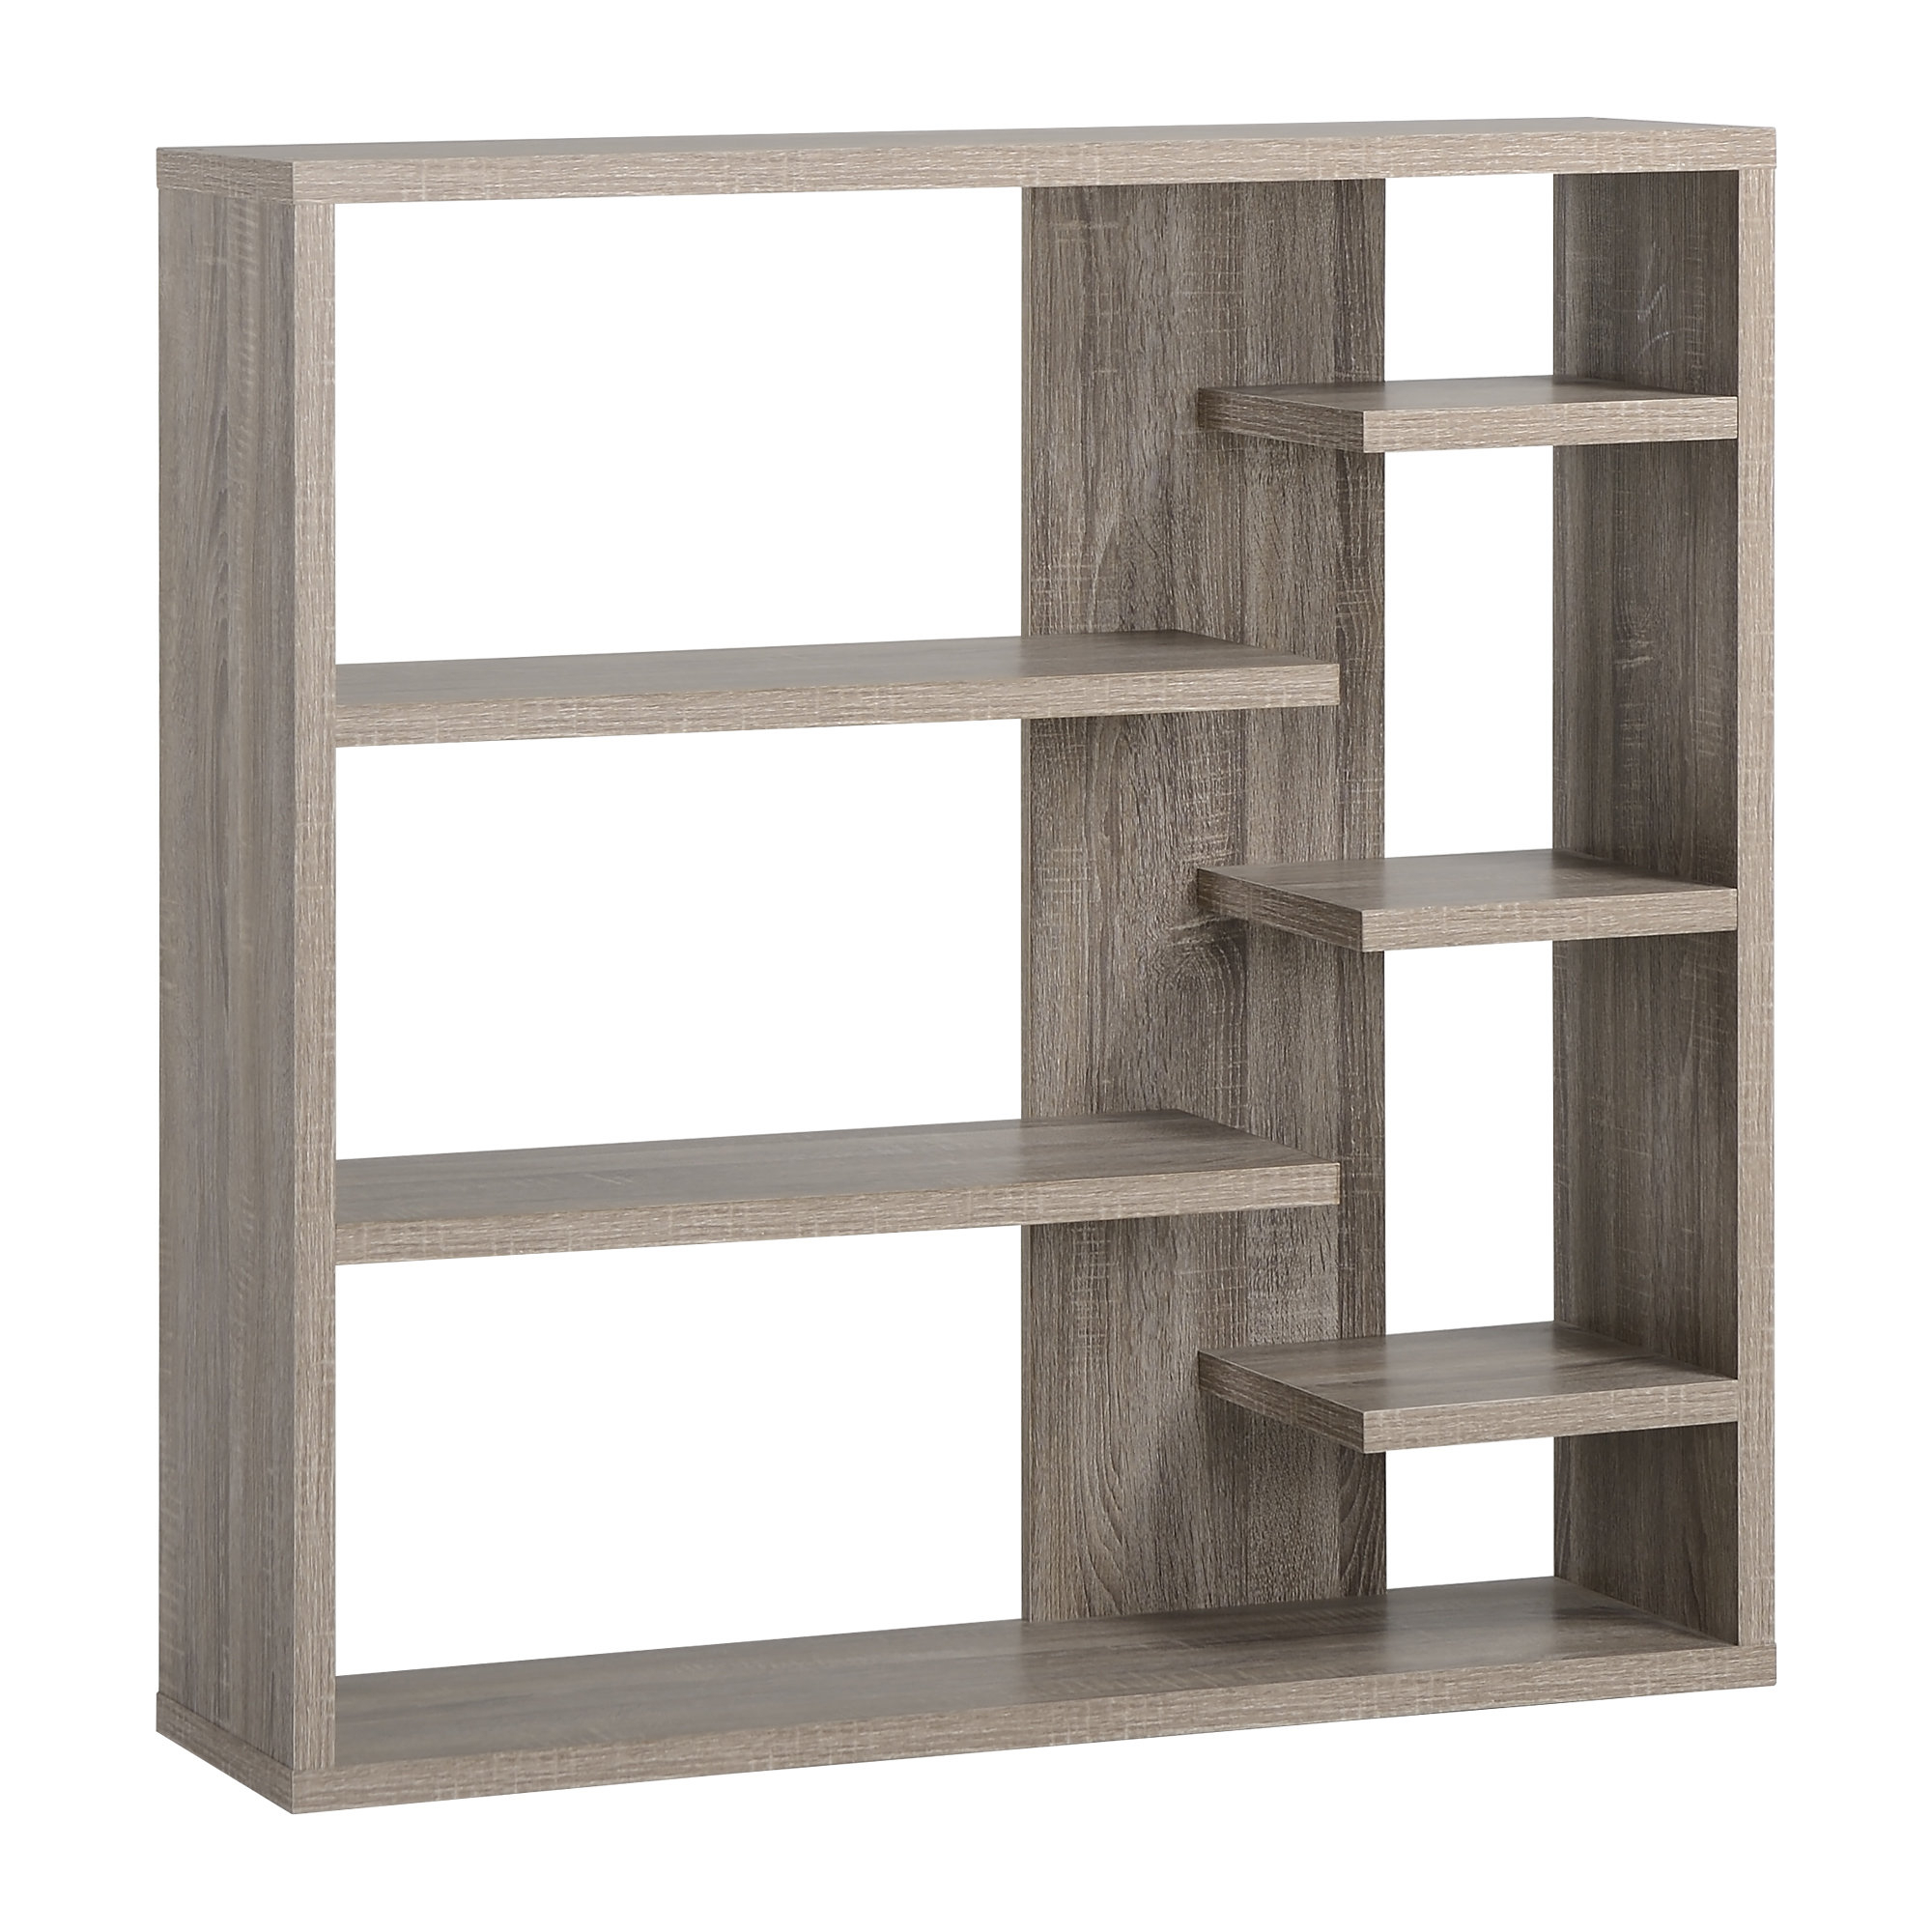 2020 Ignacio Standard Bookcases Within Standard Bookcase (View 18 of 20)